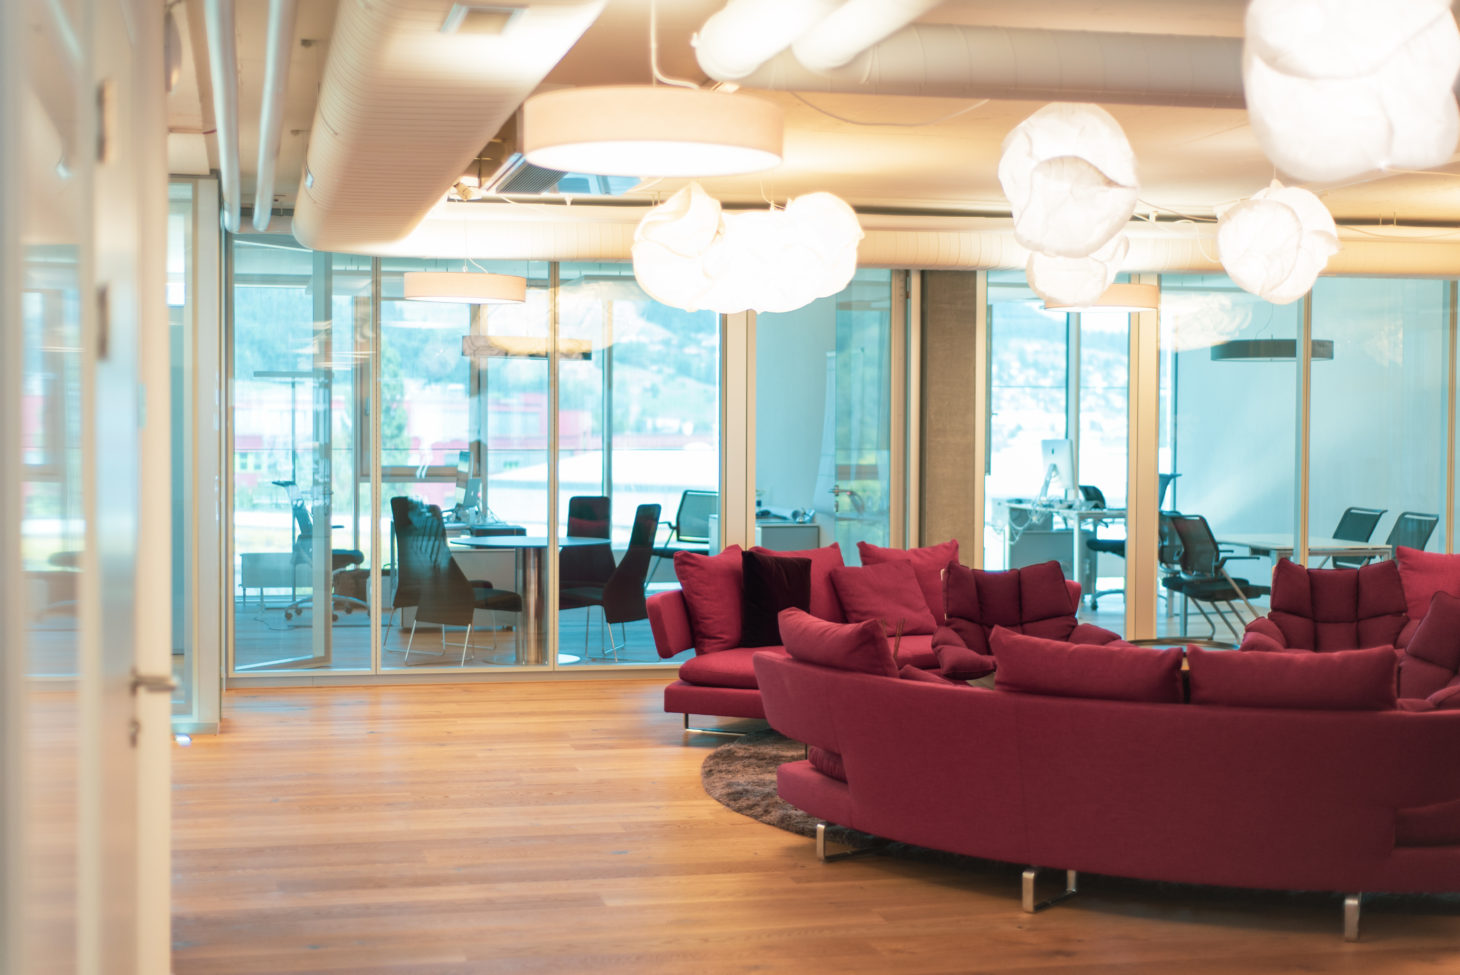 Image of a lounge, valantic Customer Engagement & Commerce (CEC) Switzerland branch in St. Gallen